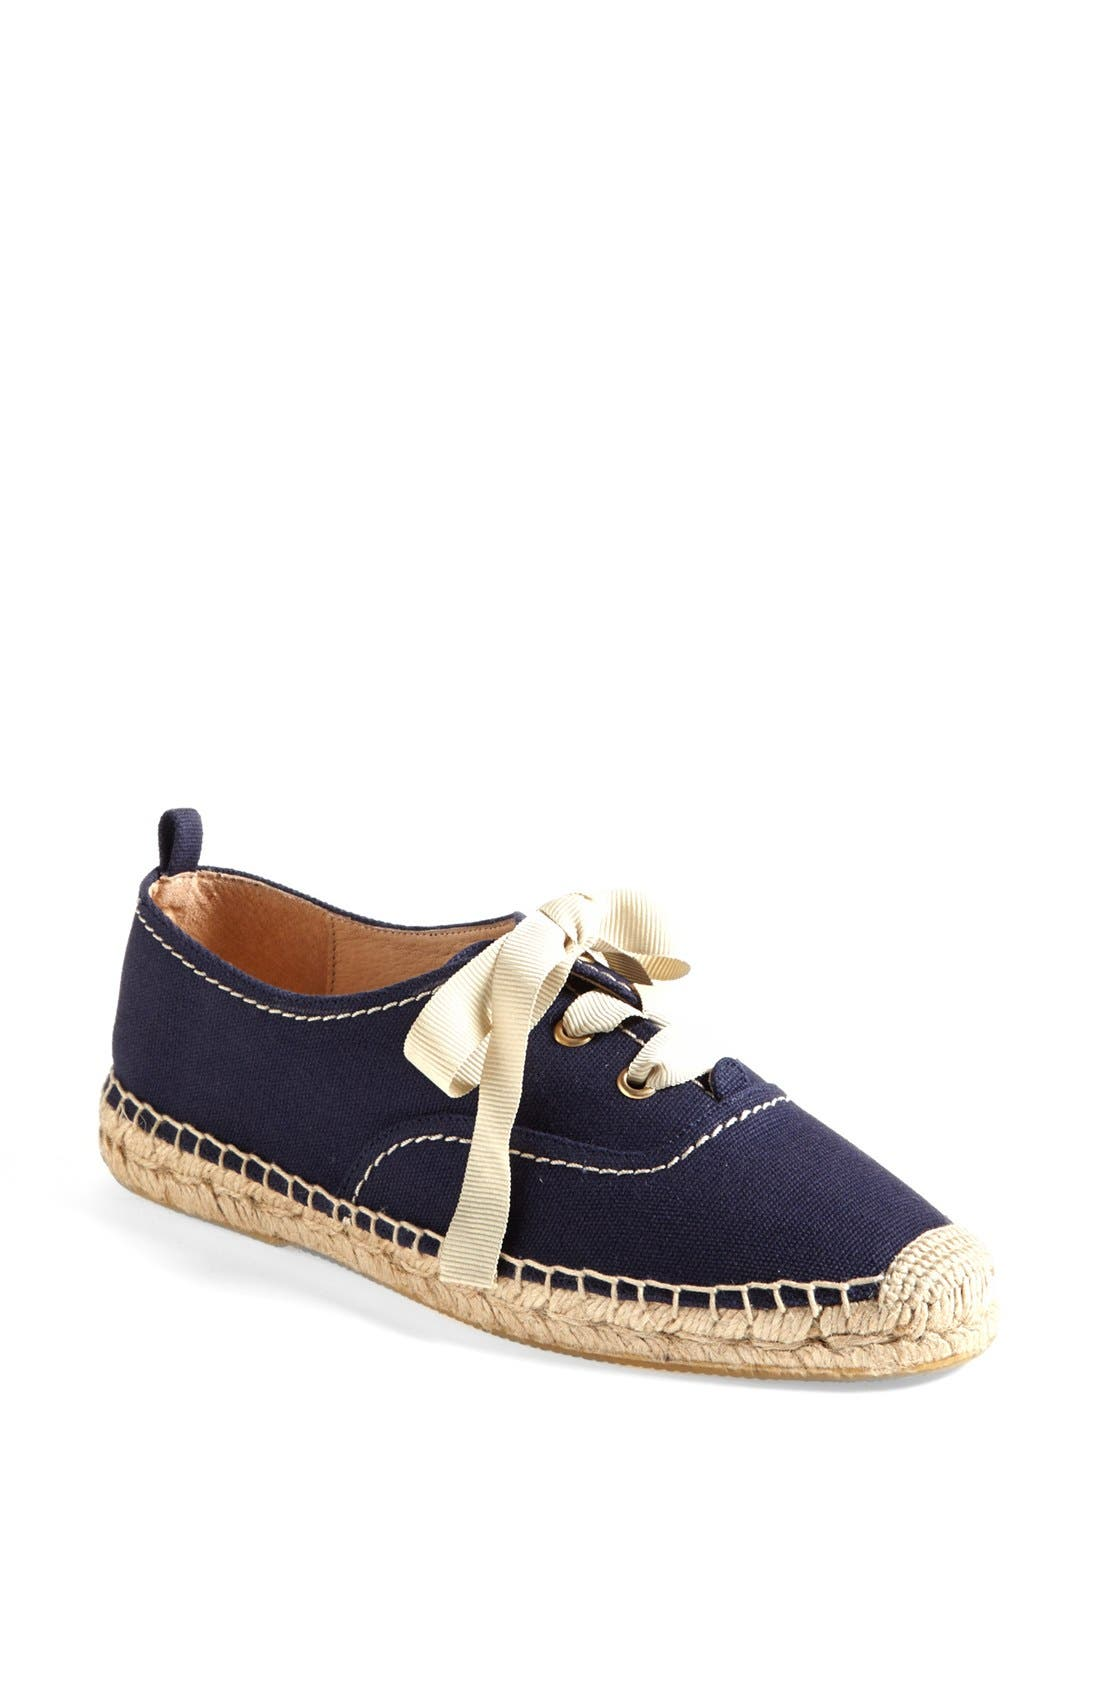 Alternate Image 1 Selected - kate spade new york 'lina' espadrille oxford